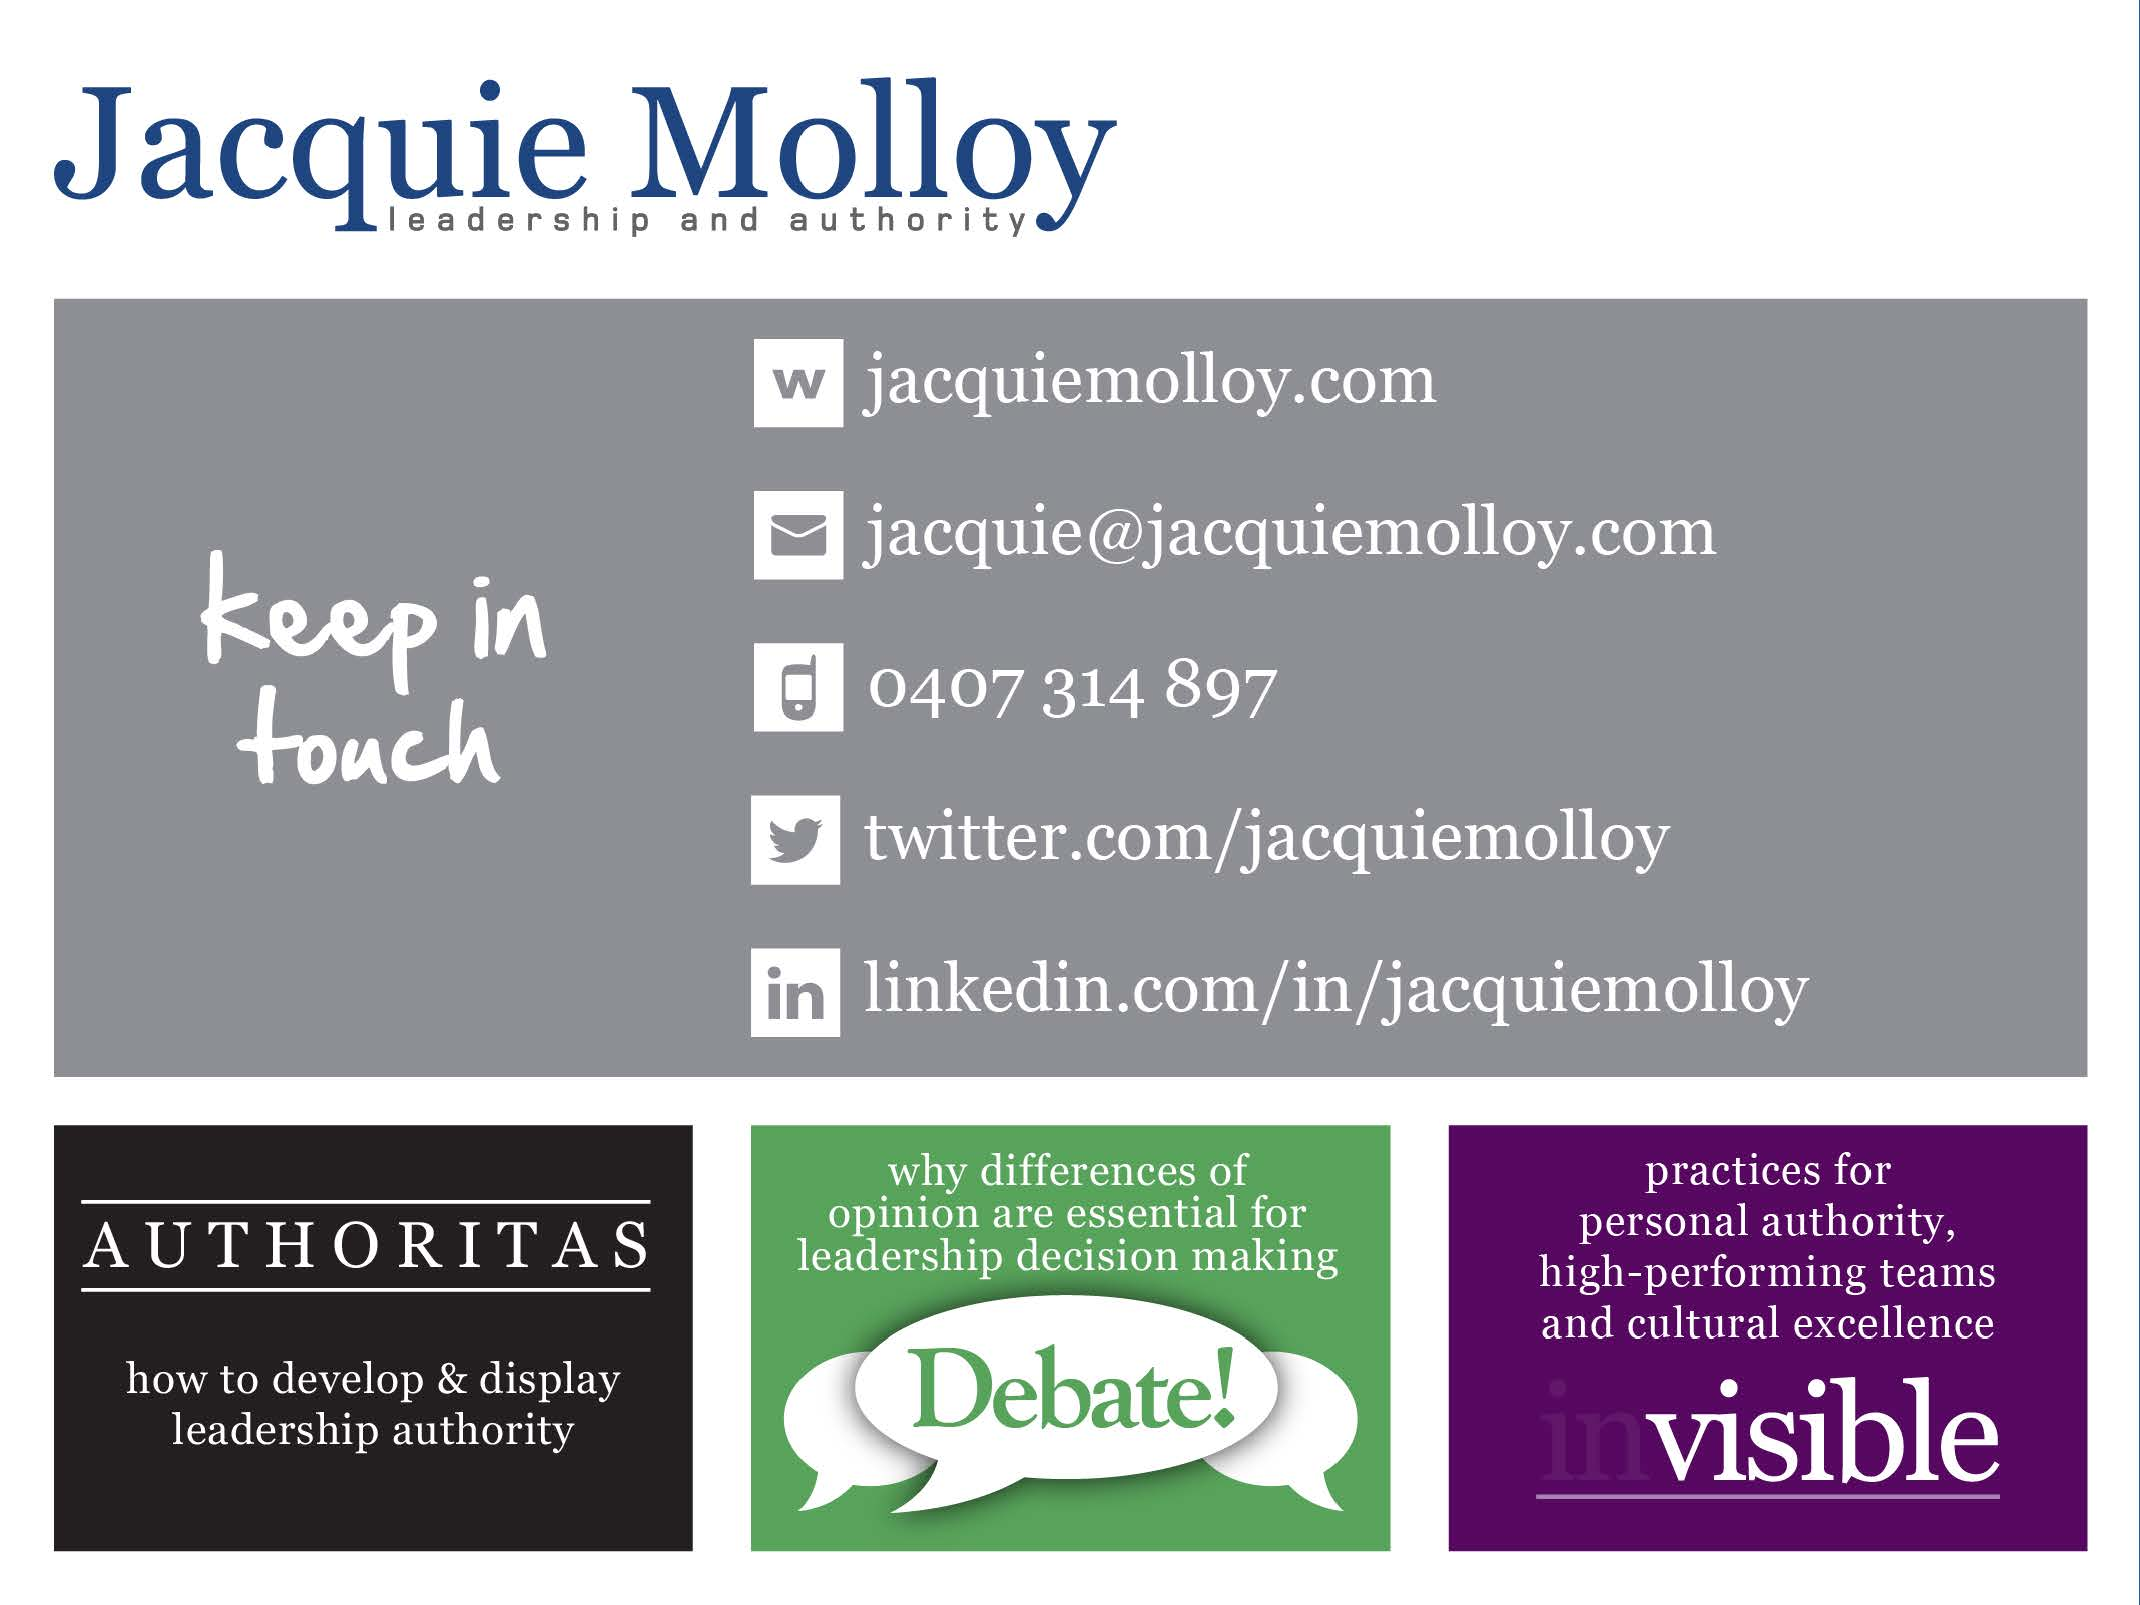 Jacquie Molloy Presentation Slides - designed by accurate expressions